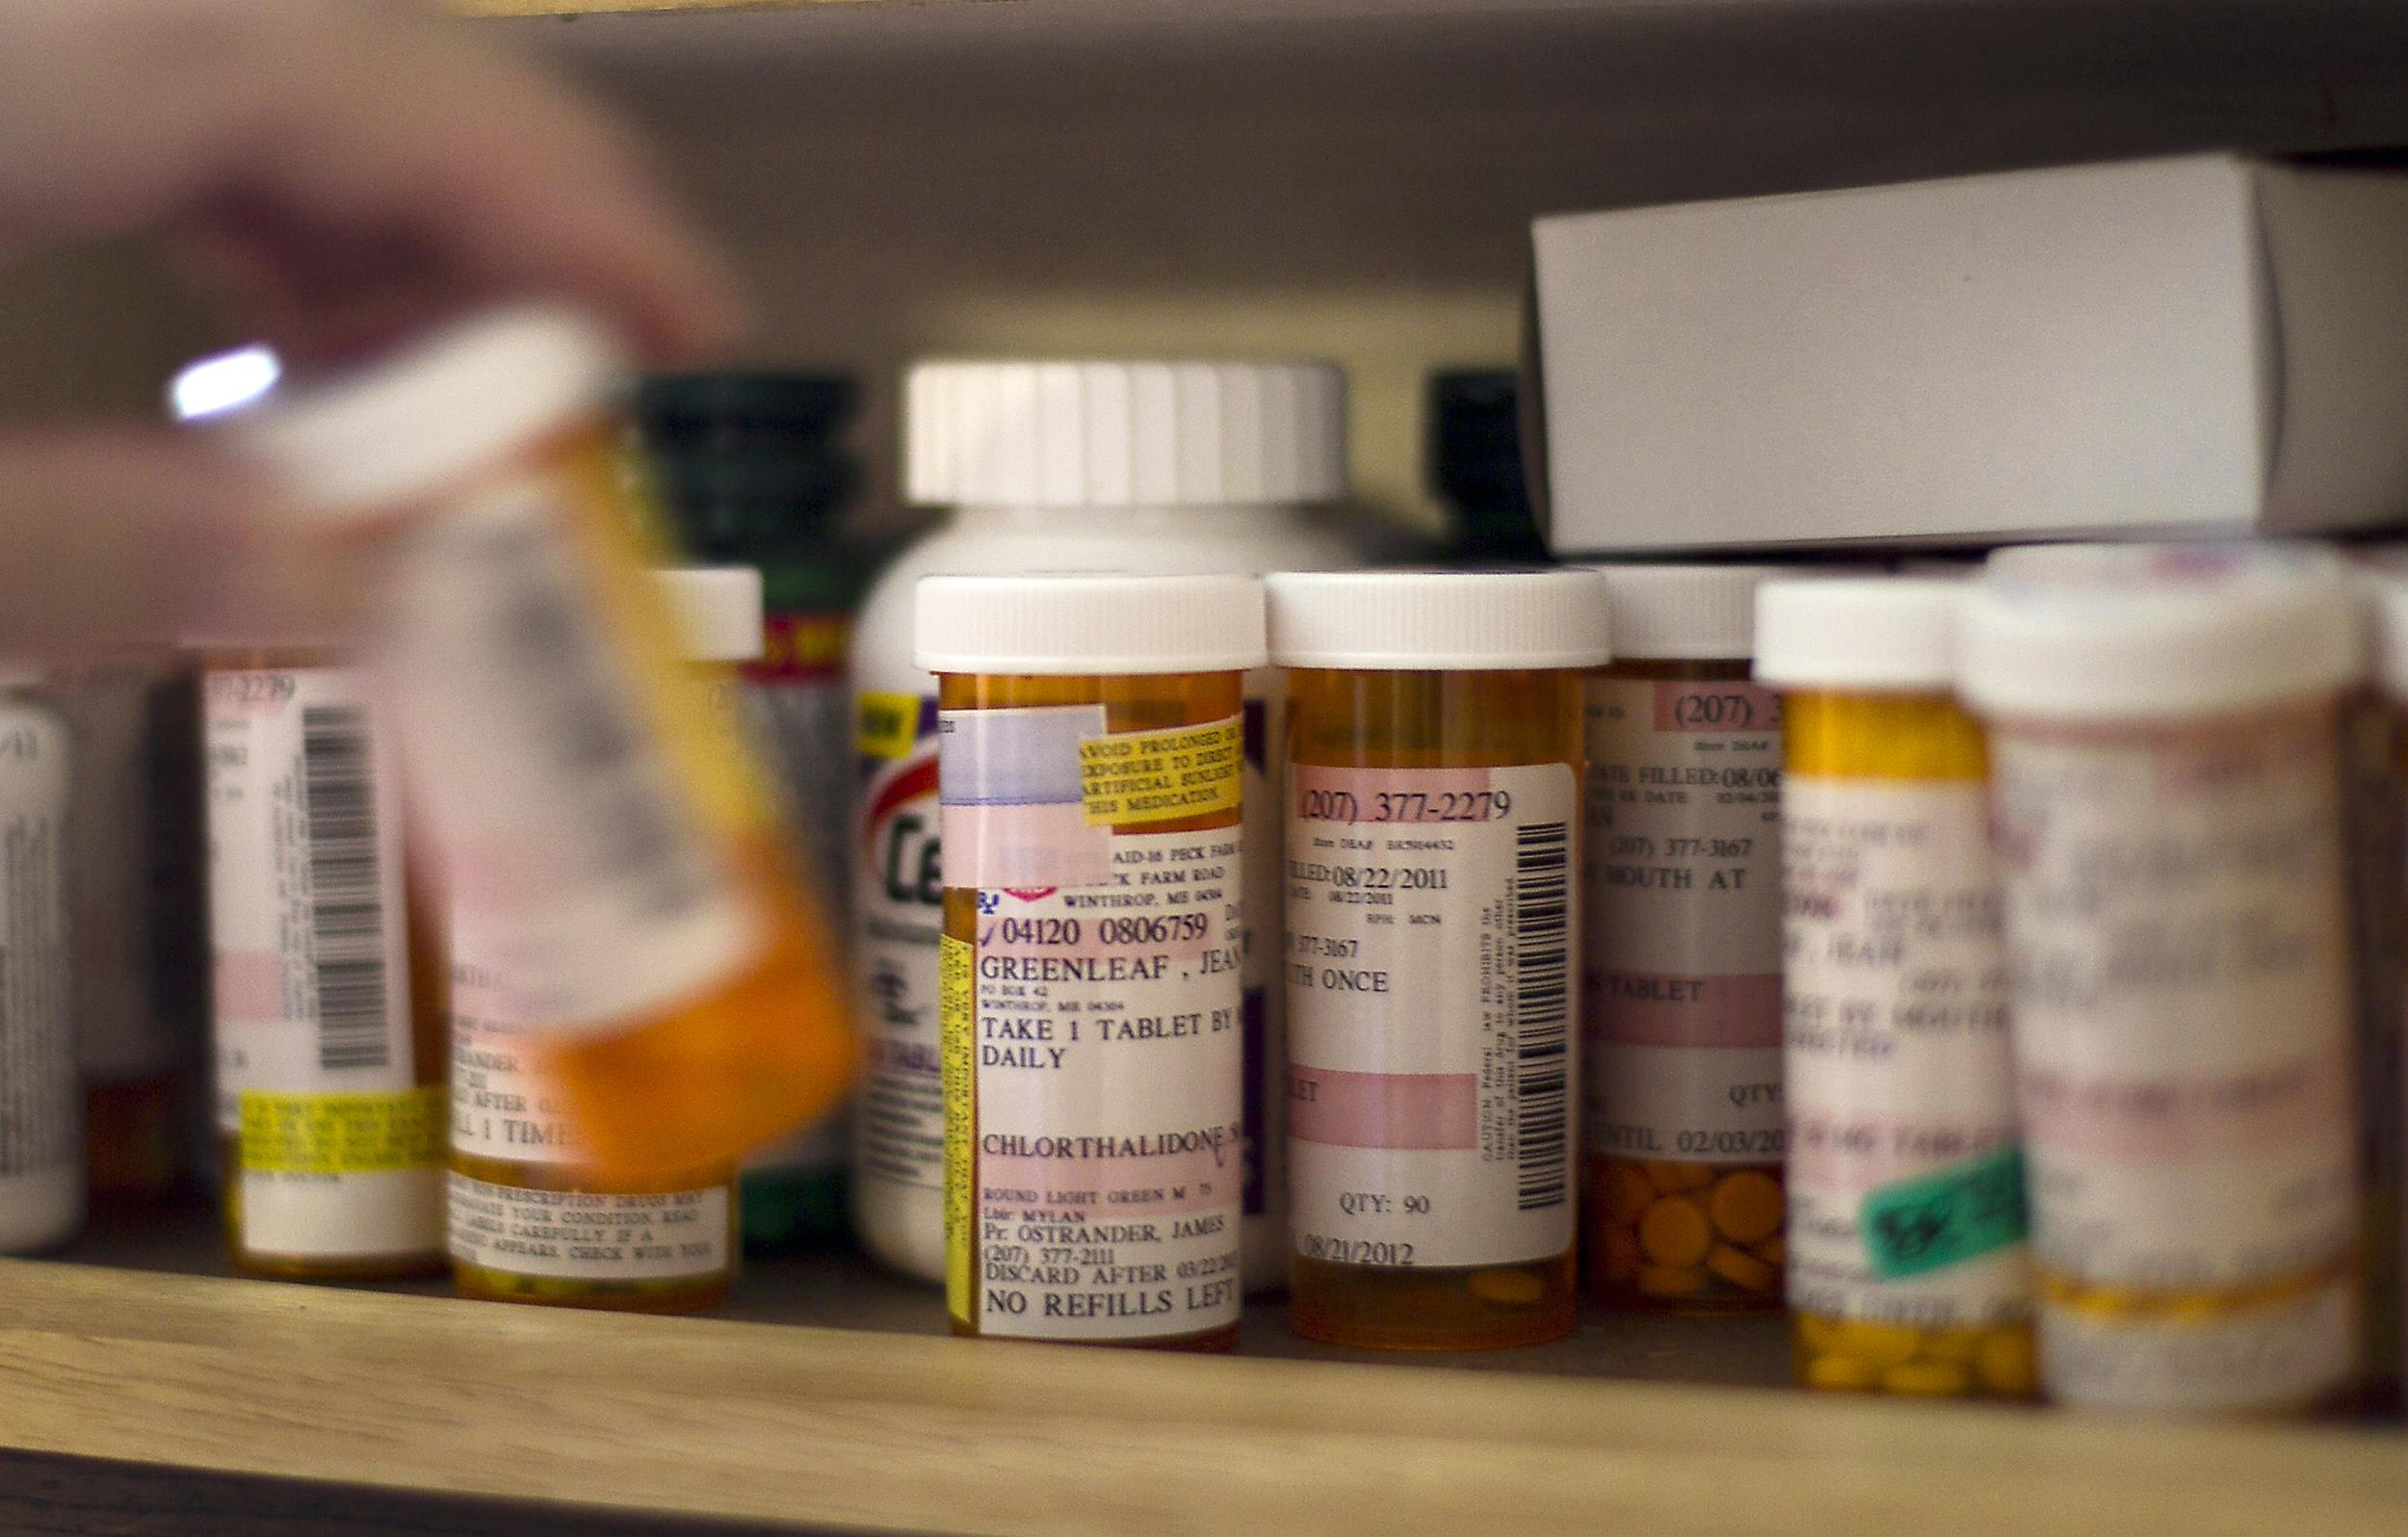 Image: A woman returns her medication to a cabinet at her home in Winthrop, Maine on Mat 11, 2012.